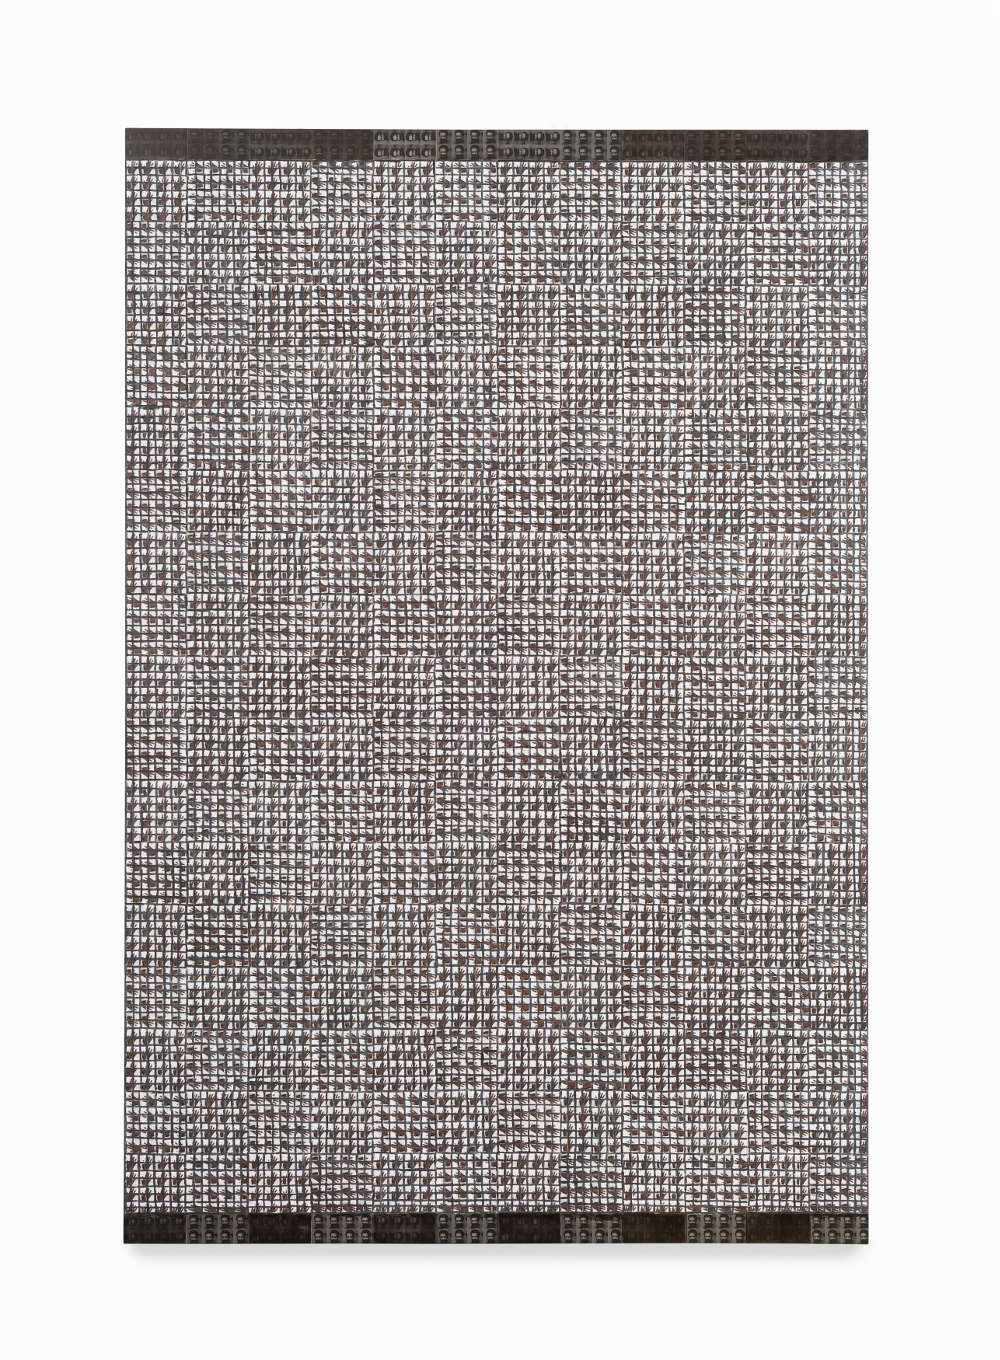 McArthur Binion, Hand:Work, 2018. Oil paint stick and paper on board 72 x 48 x 2 inches 182.88 x 121.92 x 5.08 cm. Courtesy the artist and Lehmann Maupin, New York, Hong Kong, and Seoul